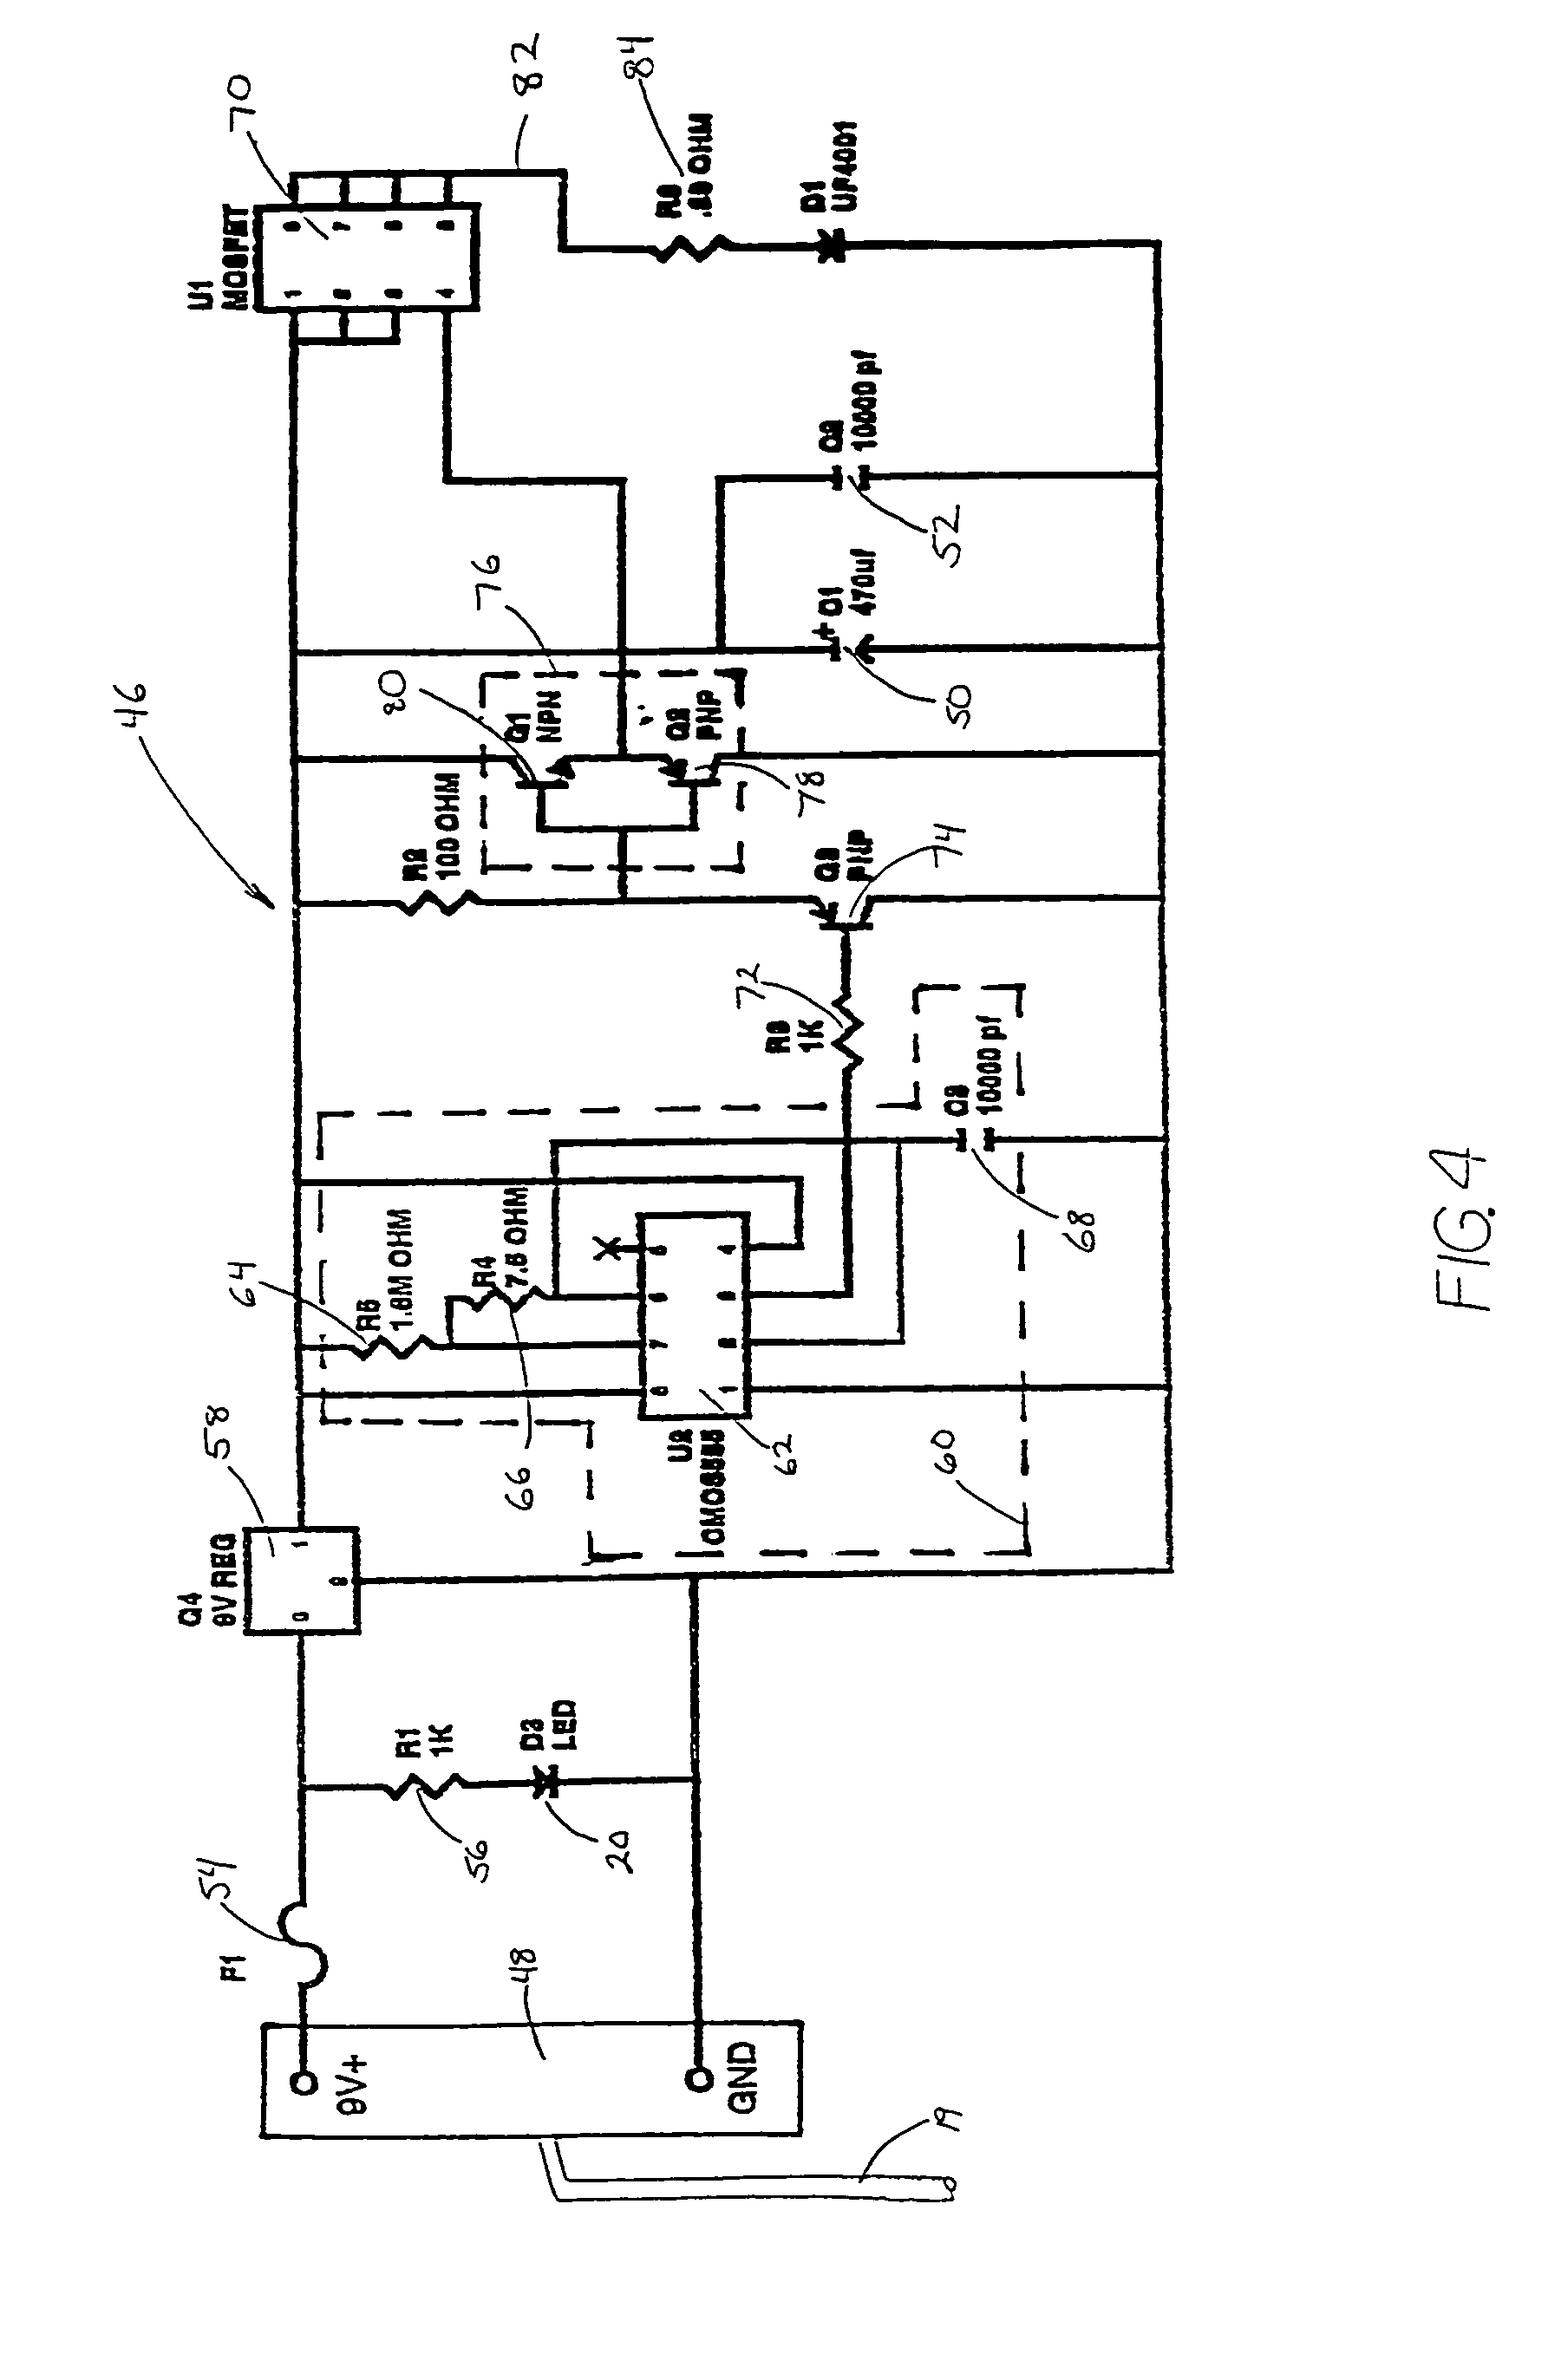 patent us7175587 - method and apparatus for pulsed electromagnetic therapy